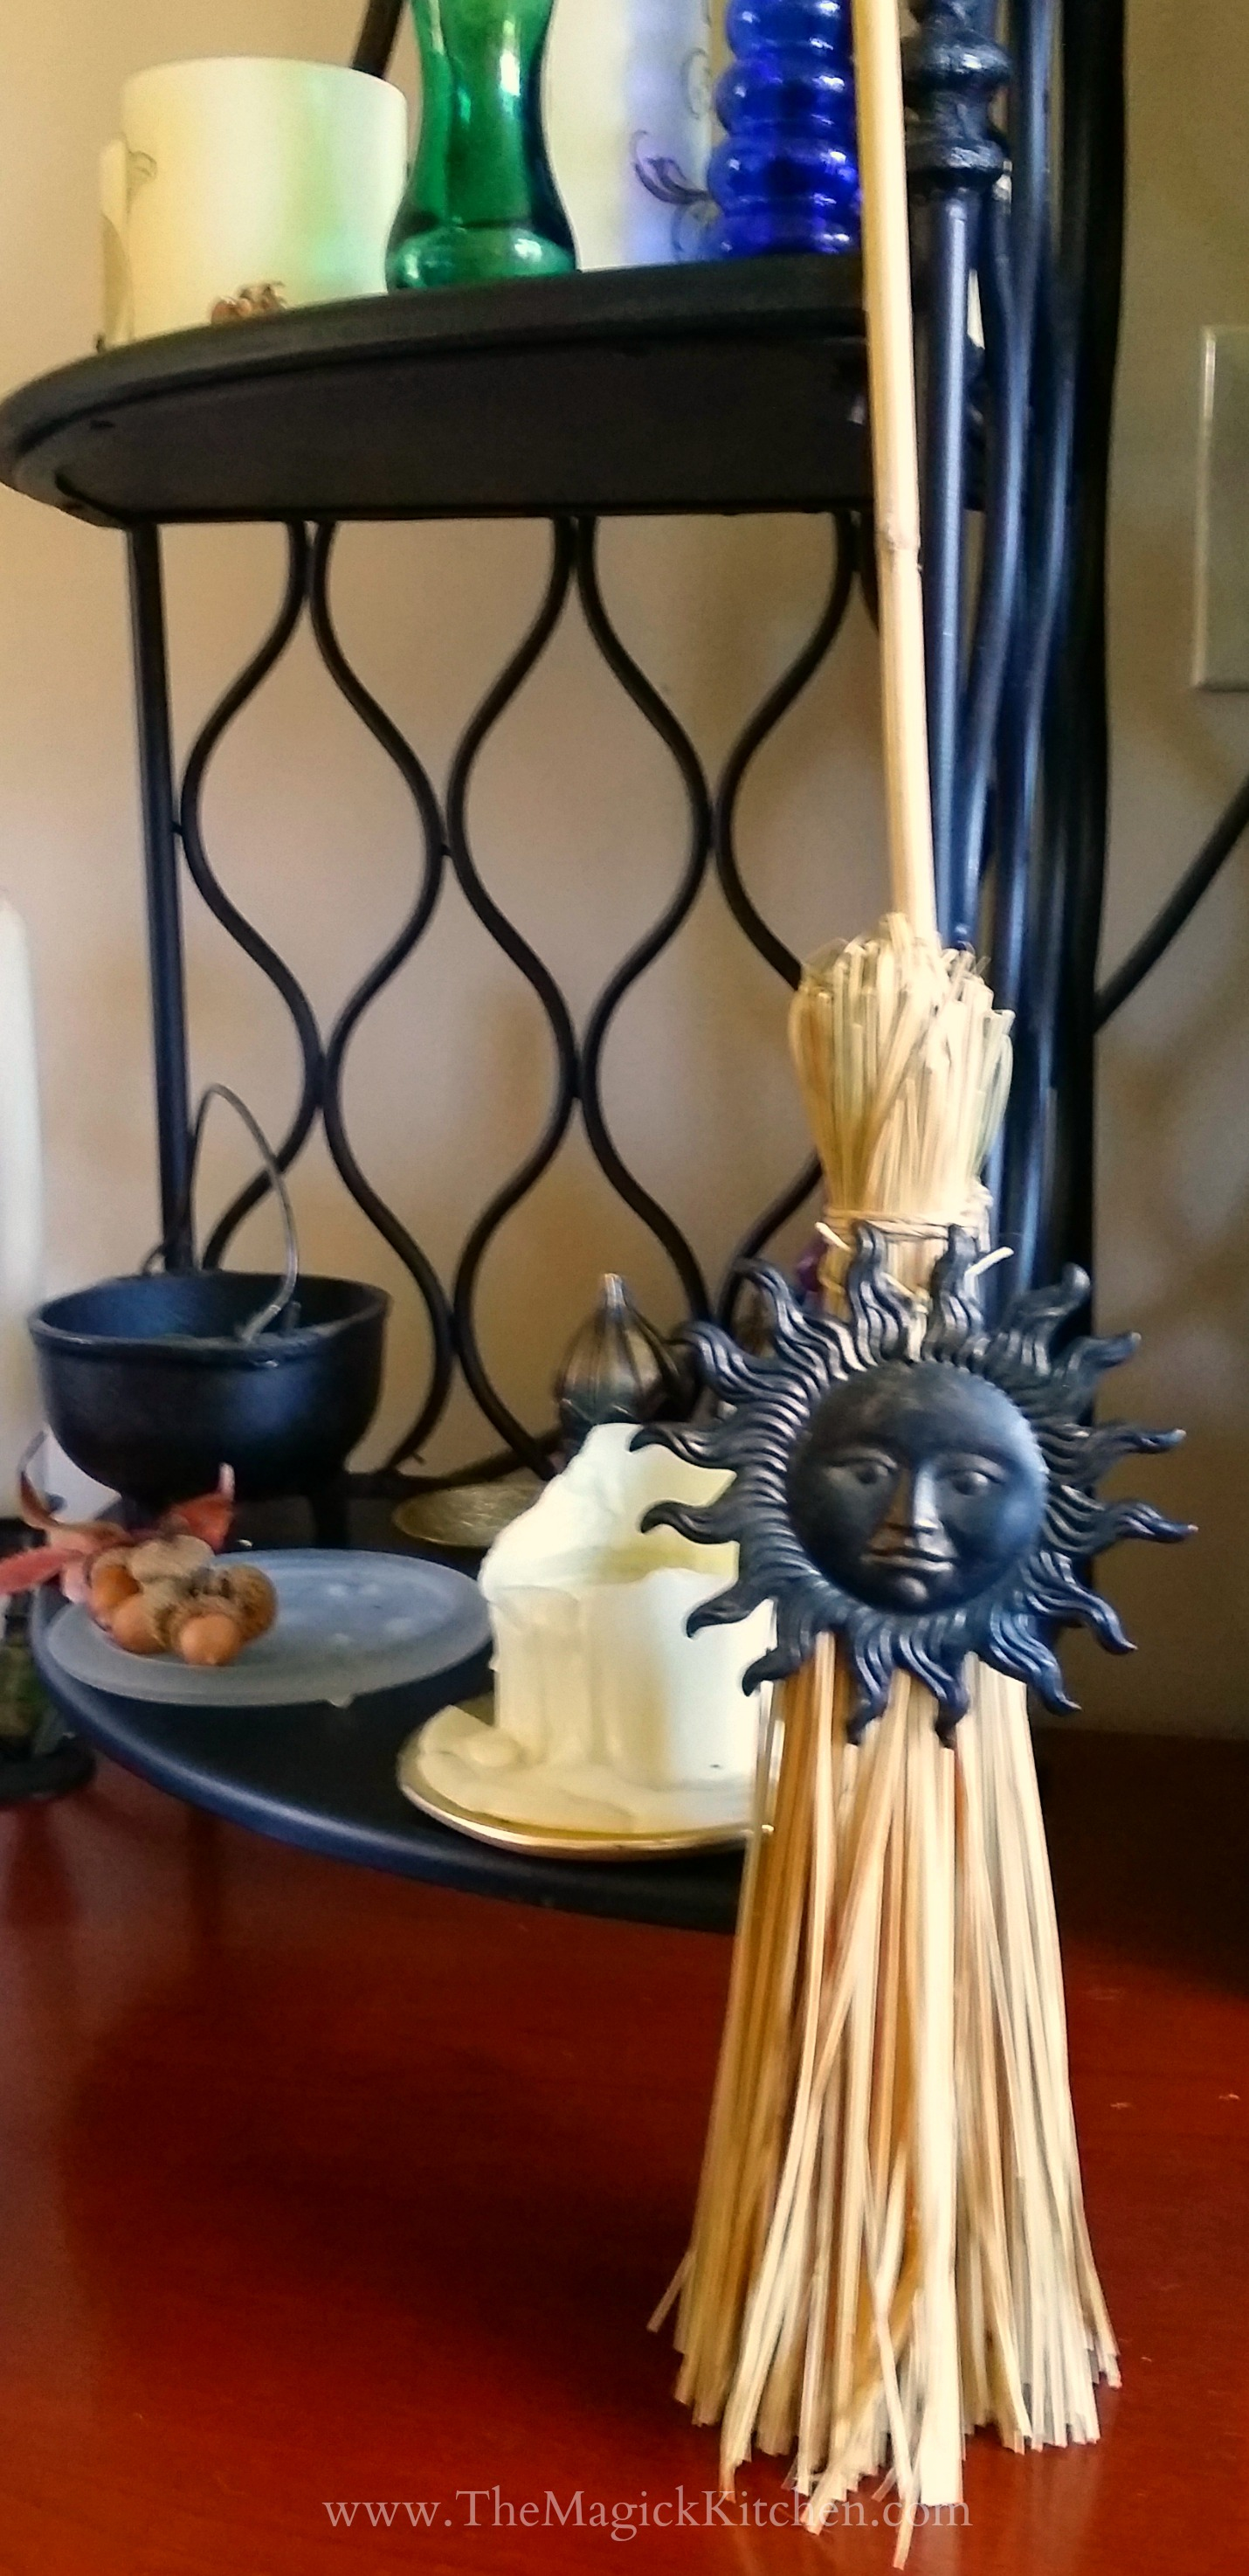 The Witches' Broom – The Magick Kitchen